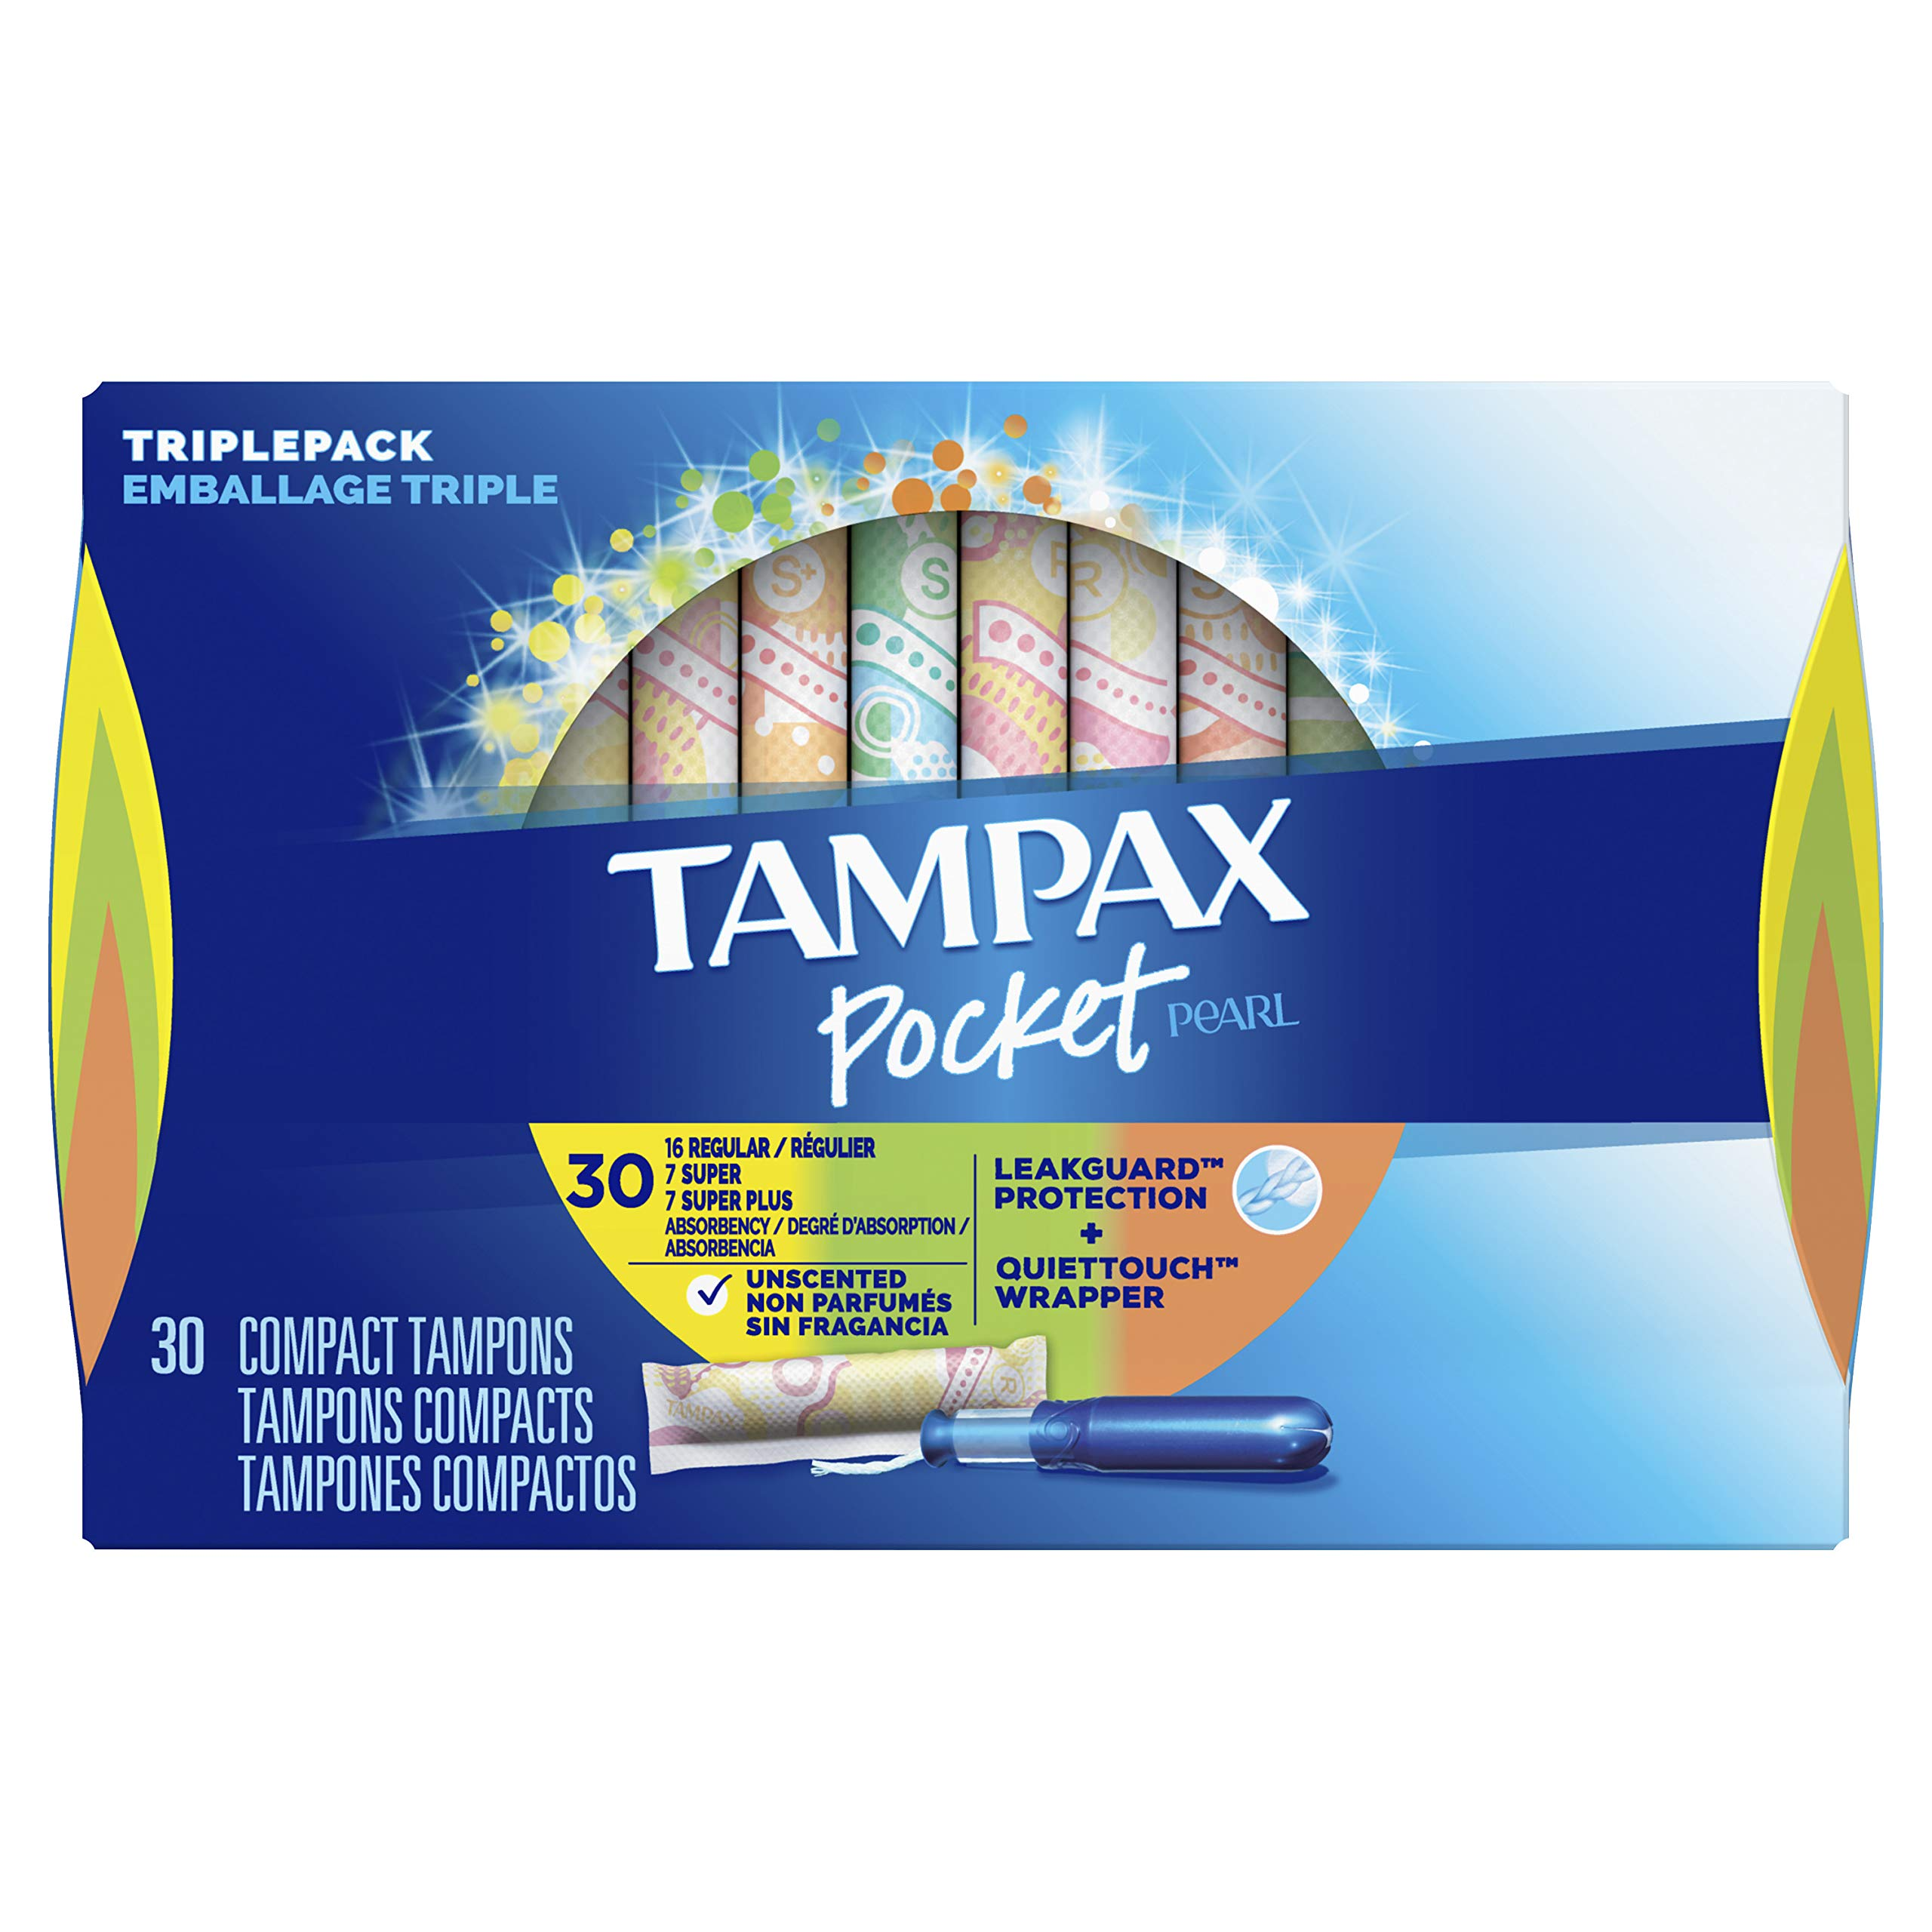 Tampax Pocket Pearl Plastic Tampons, Regular/Super/Super Plus Absorbency Triplepack, Unscented, 30 Count (Packaging May Vary)